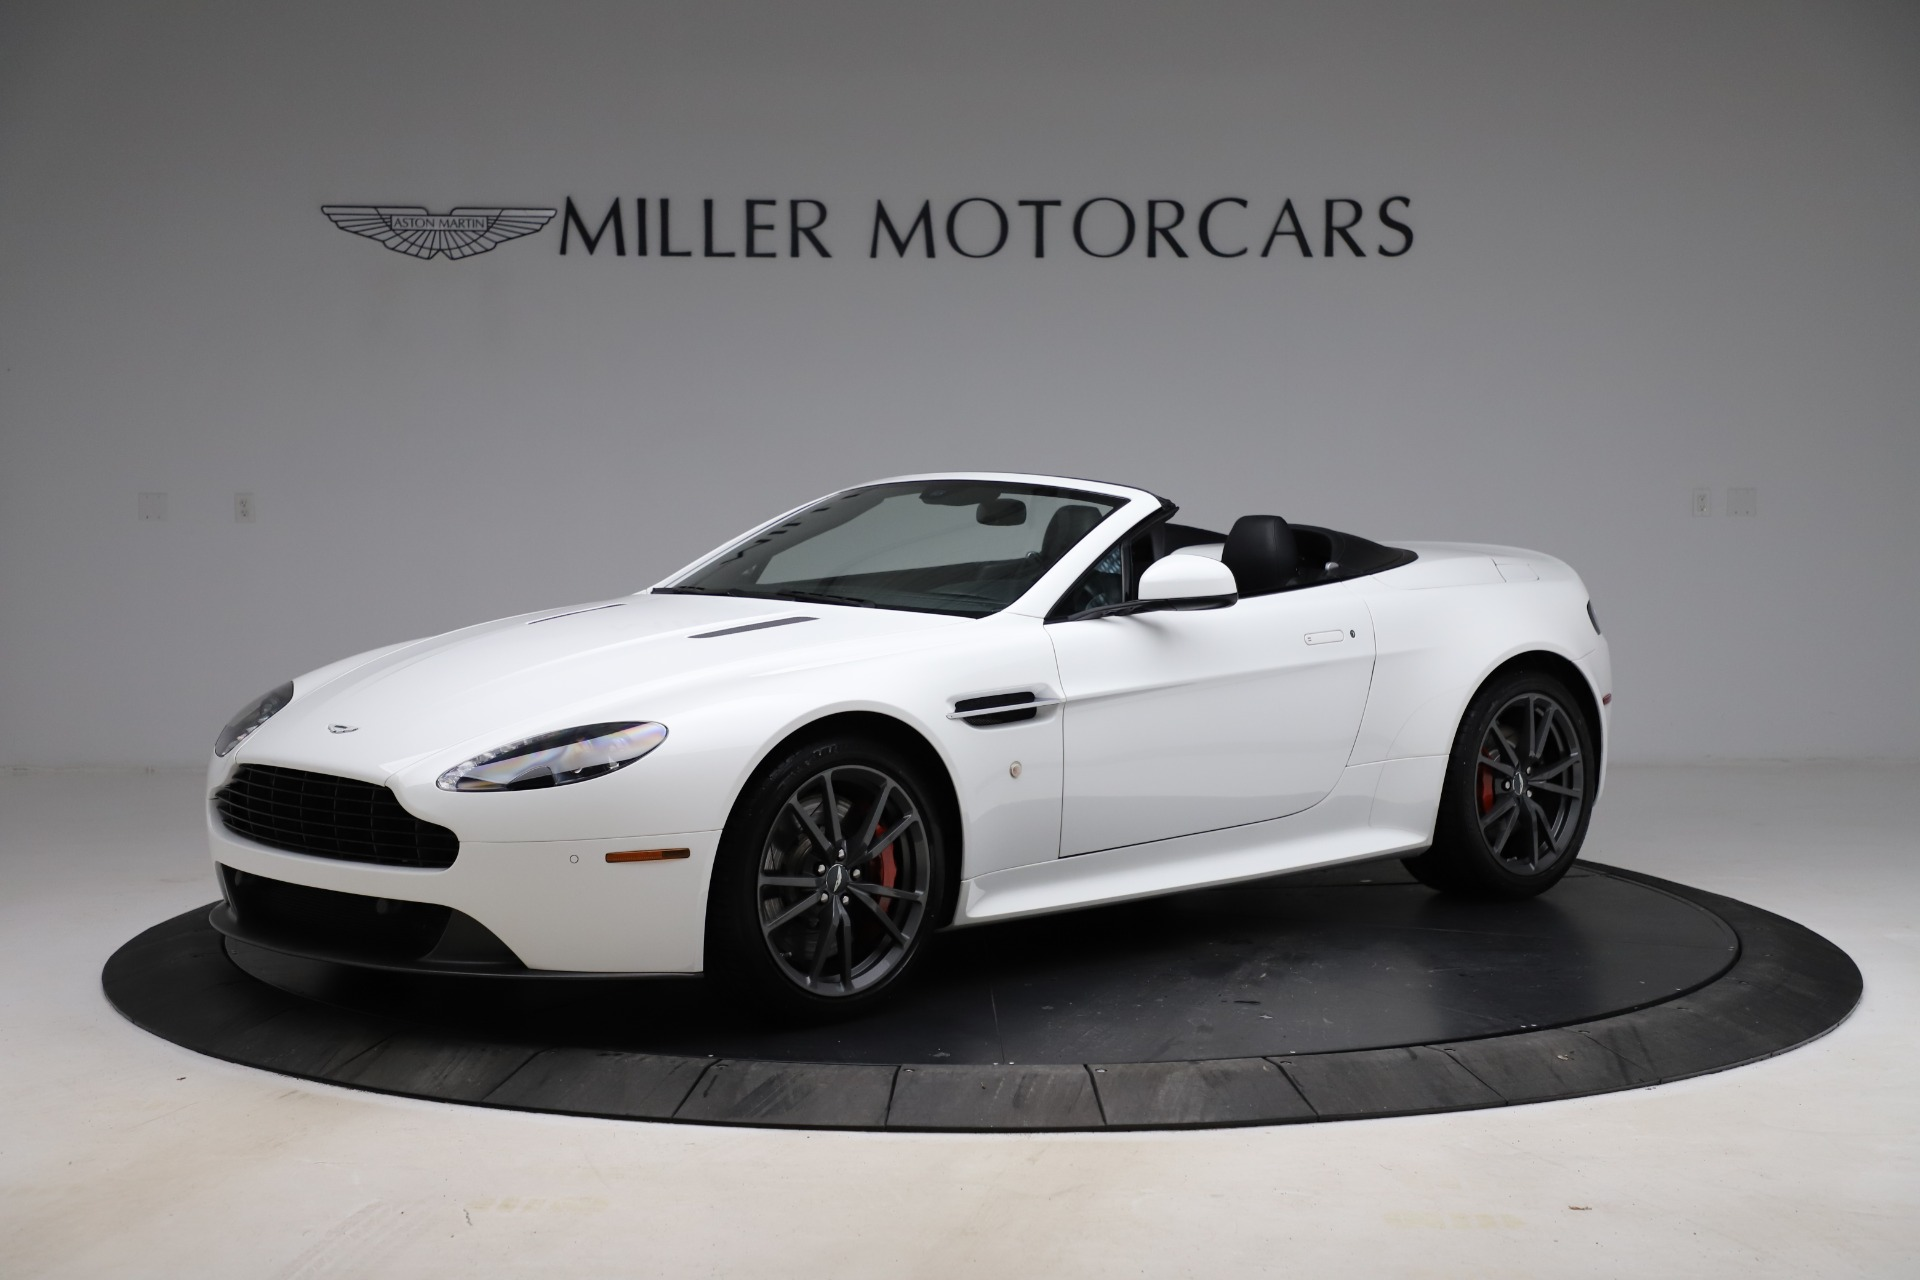 New 2015 Aston Martin Vantage GT GT Roadster for sale Sold at Aston Martin of Greenwich in Greenwich CT 06830 1